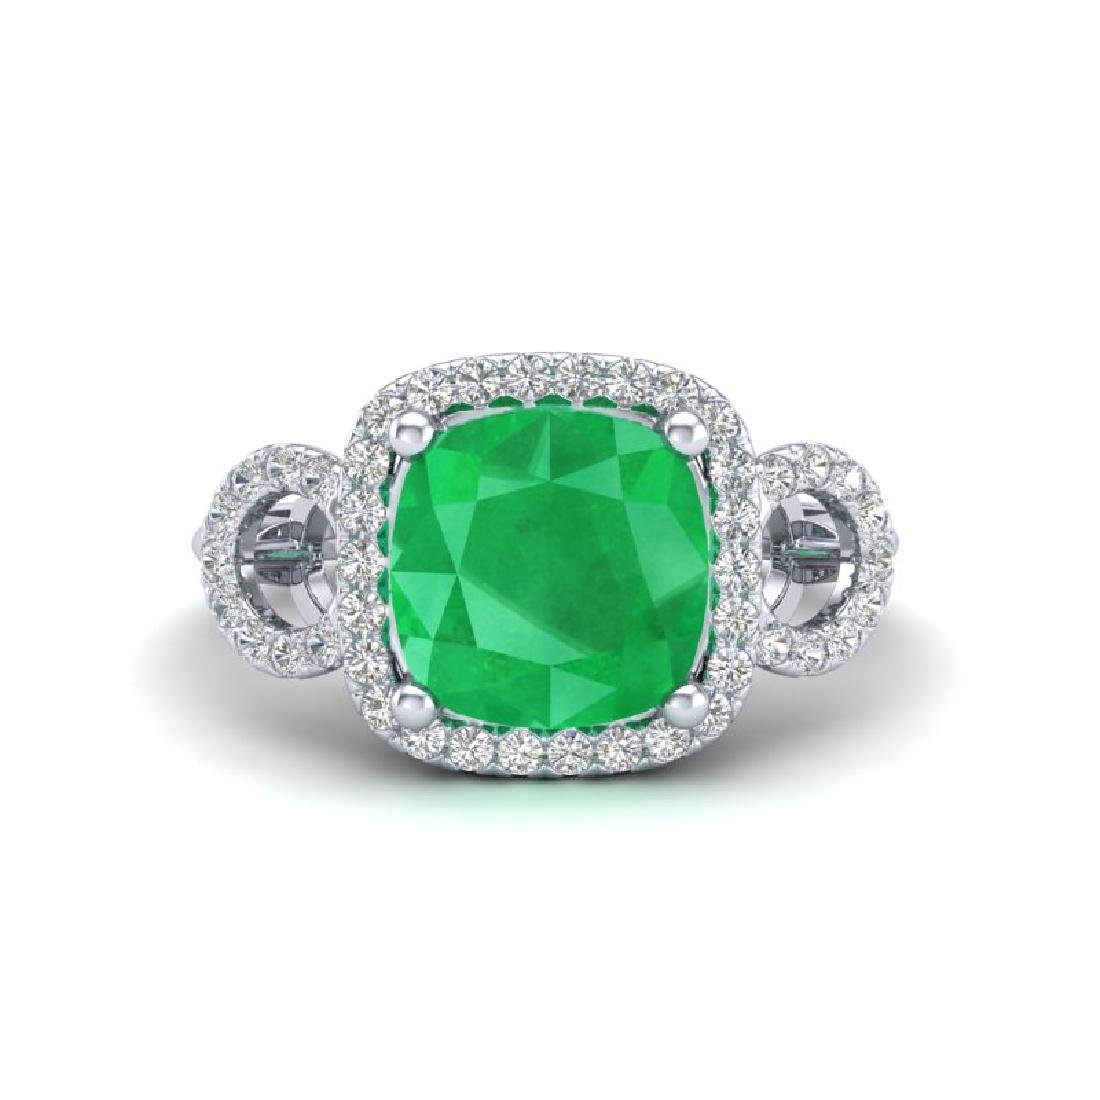 3.15 CTW Emerald & Micro VS/SI Diamond Ring 18K White